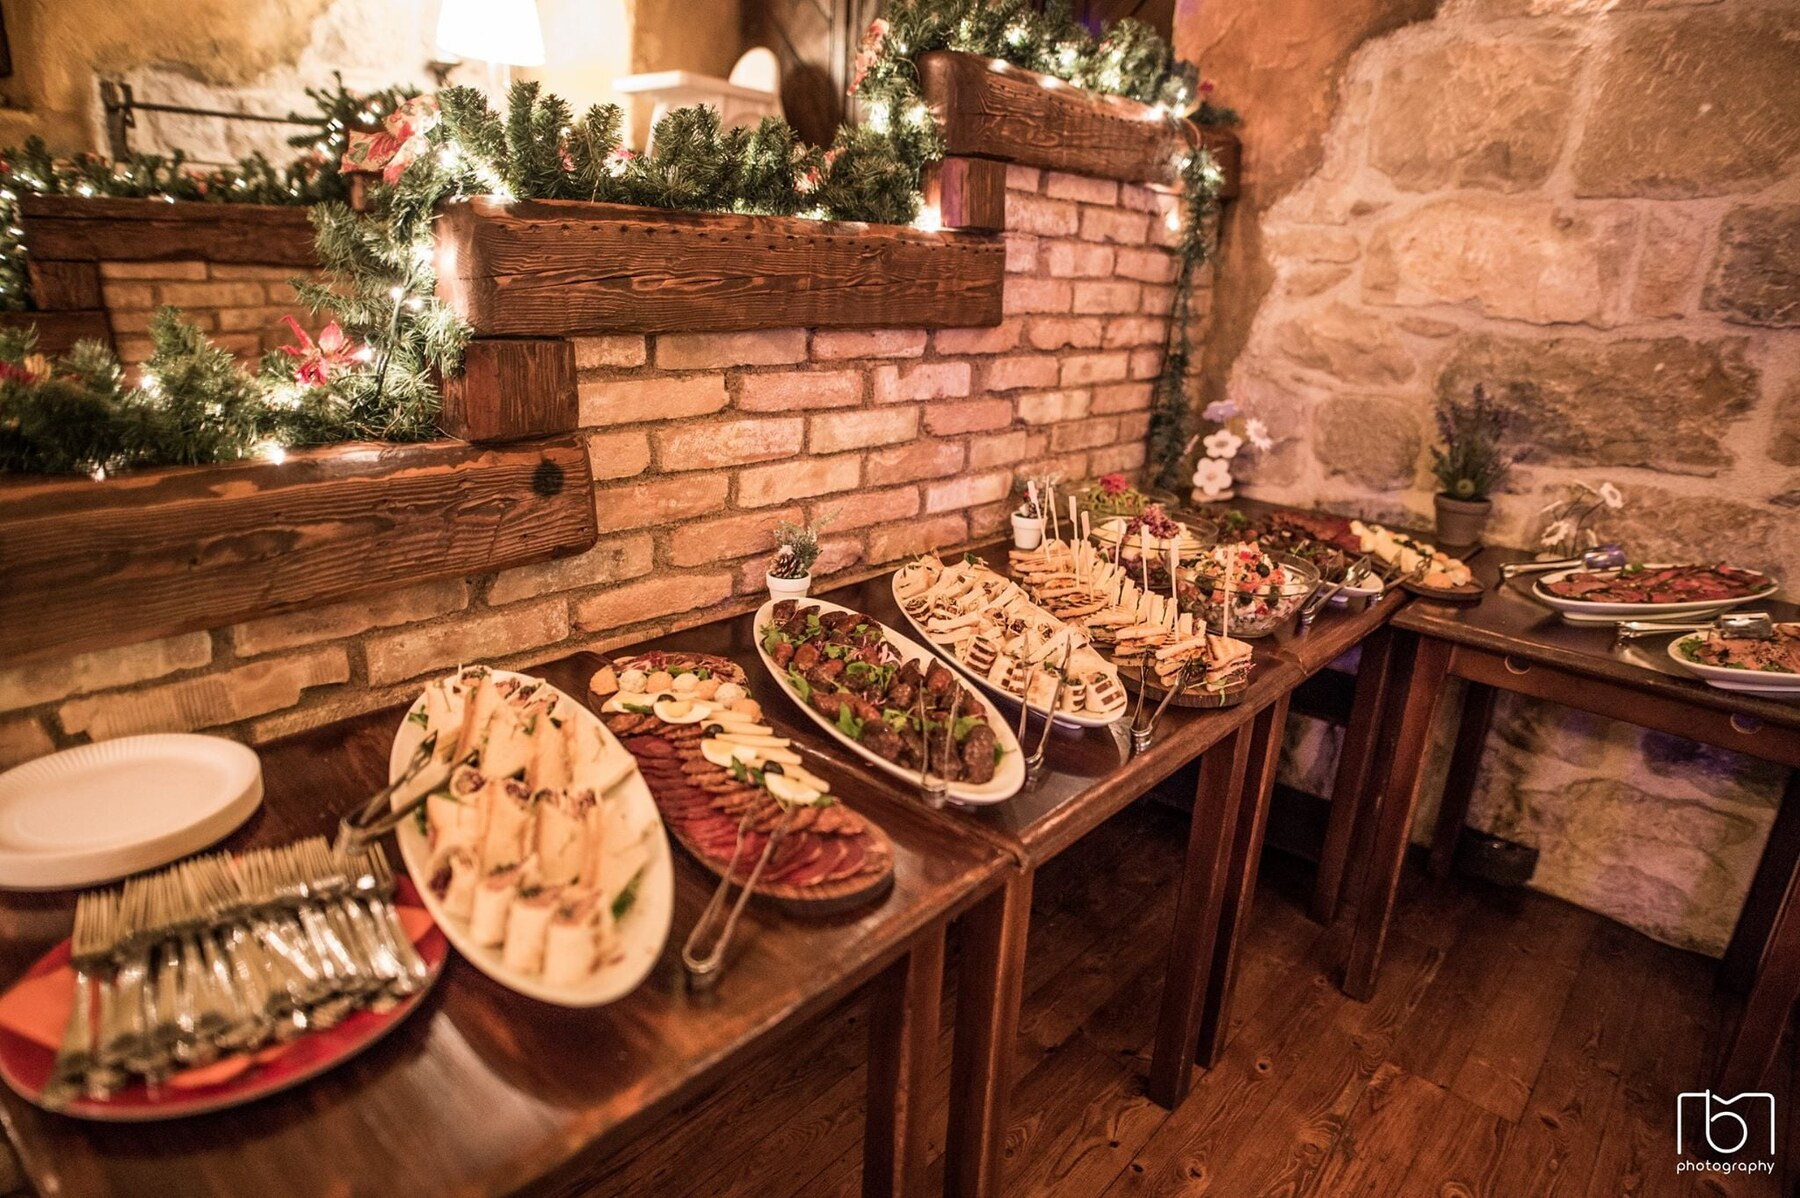 Croatian food: Traditional wedding menu in Dalmatia (photo by: Konoba Matoni)